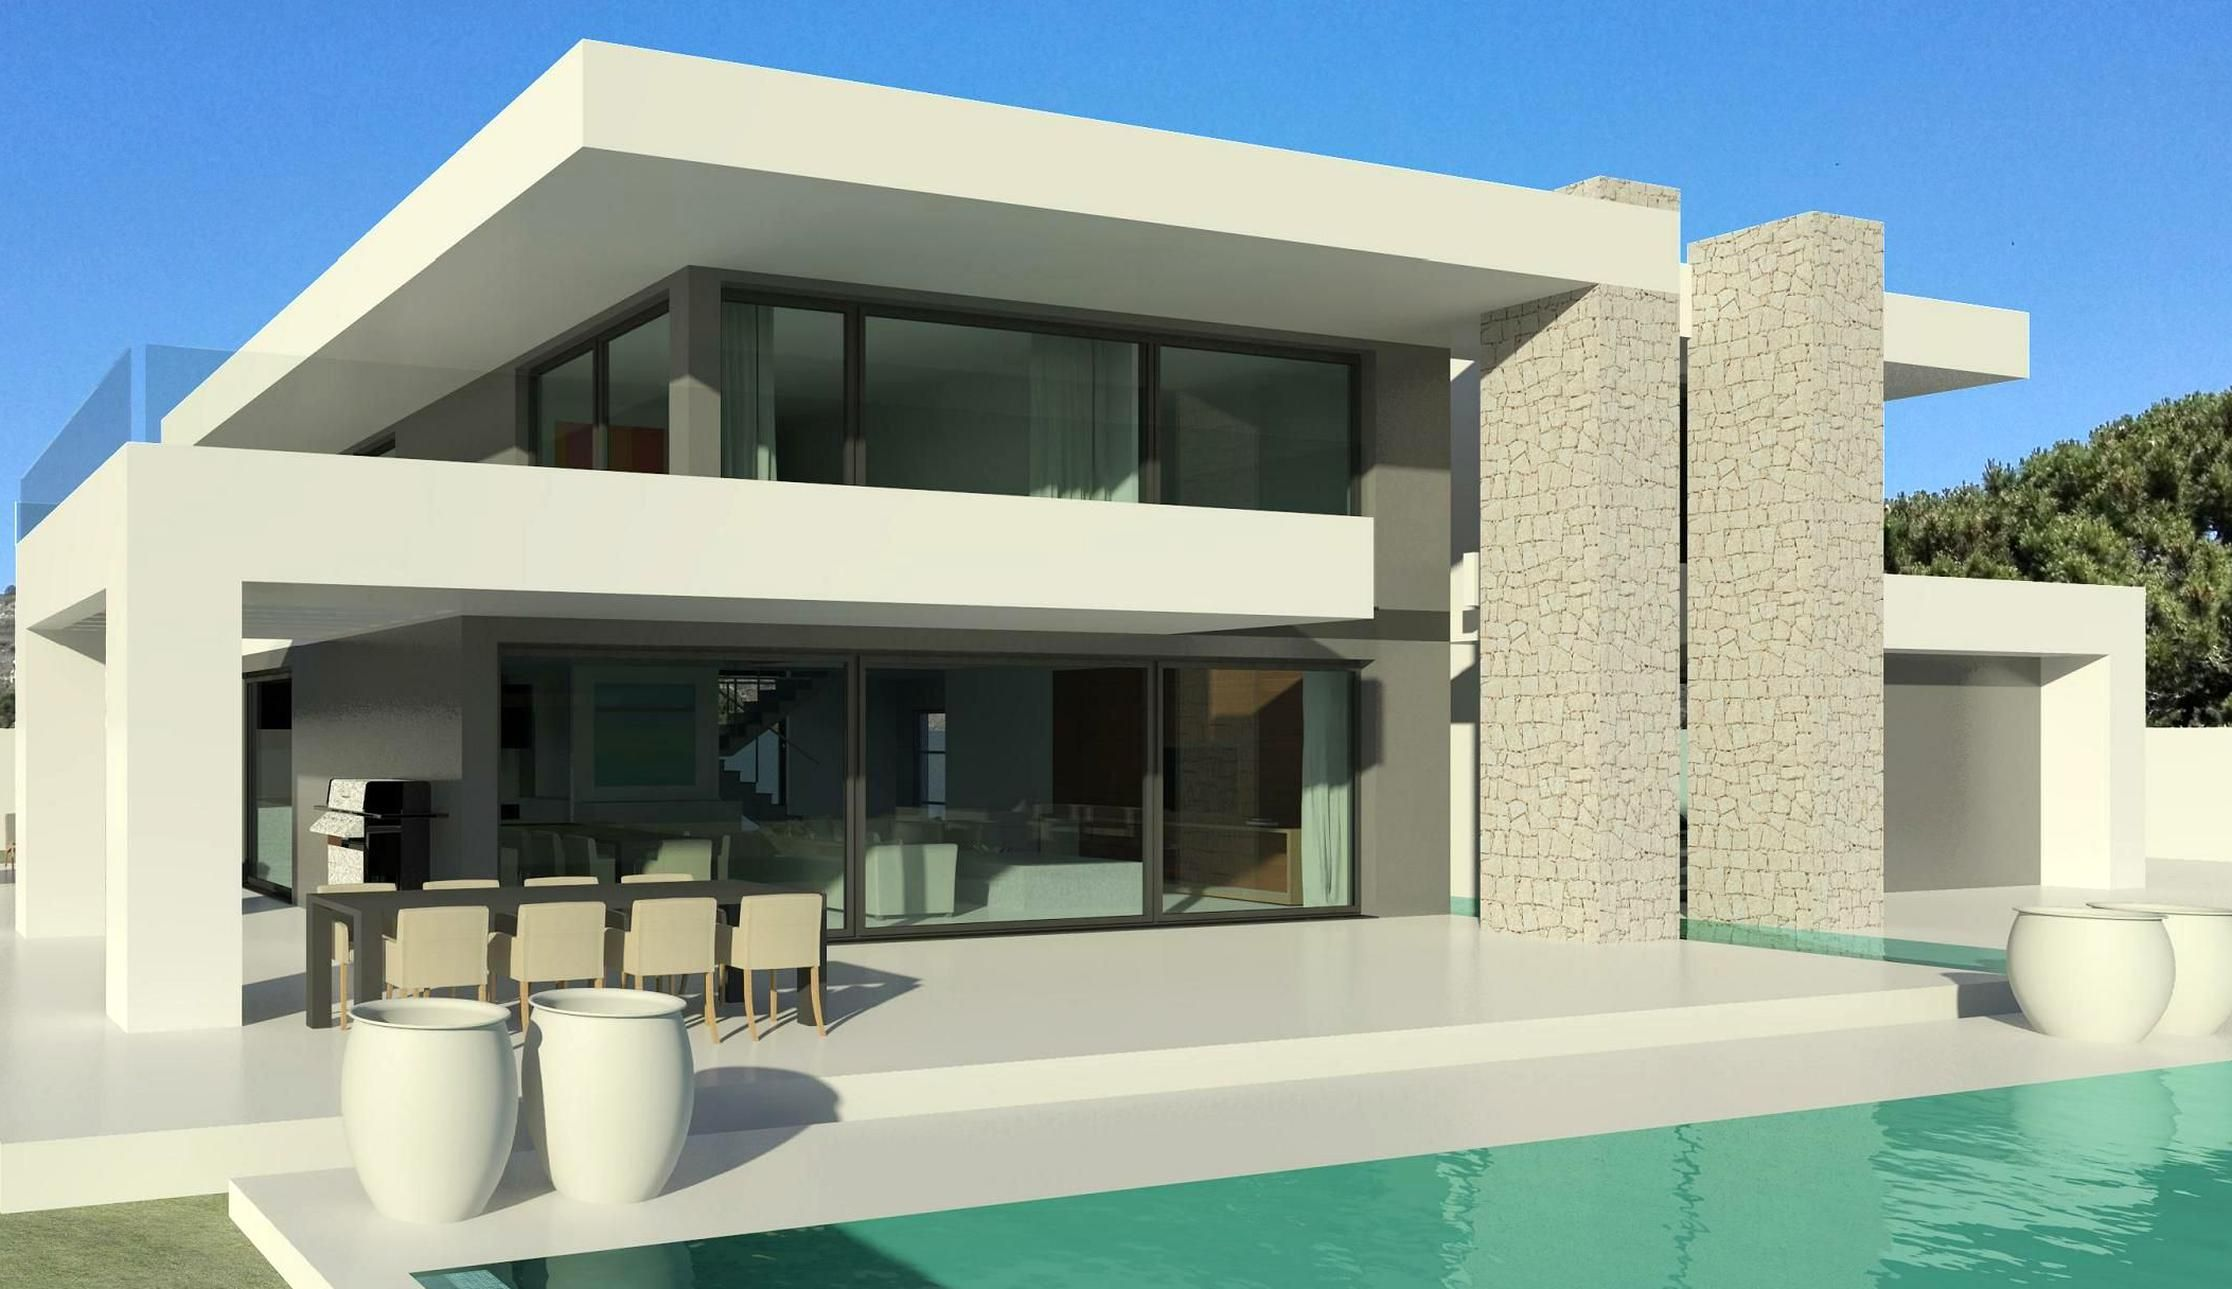 Modern Villa Plan Dwg Architecture Is Both The Process And The Product Of Planning Designing And Constru Villa Plan Modern House Floor Plans Modern House Plans